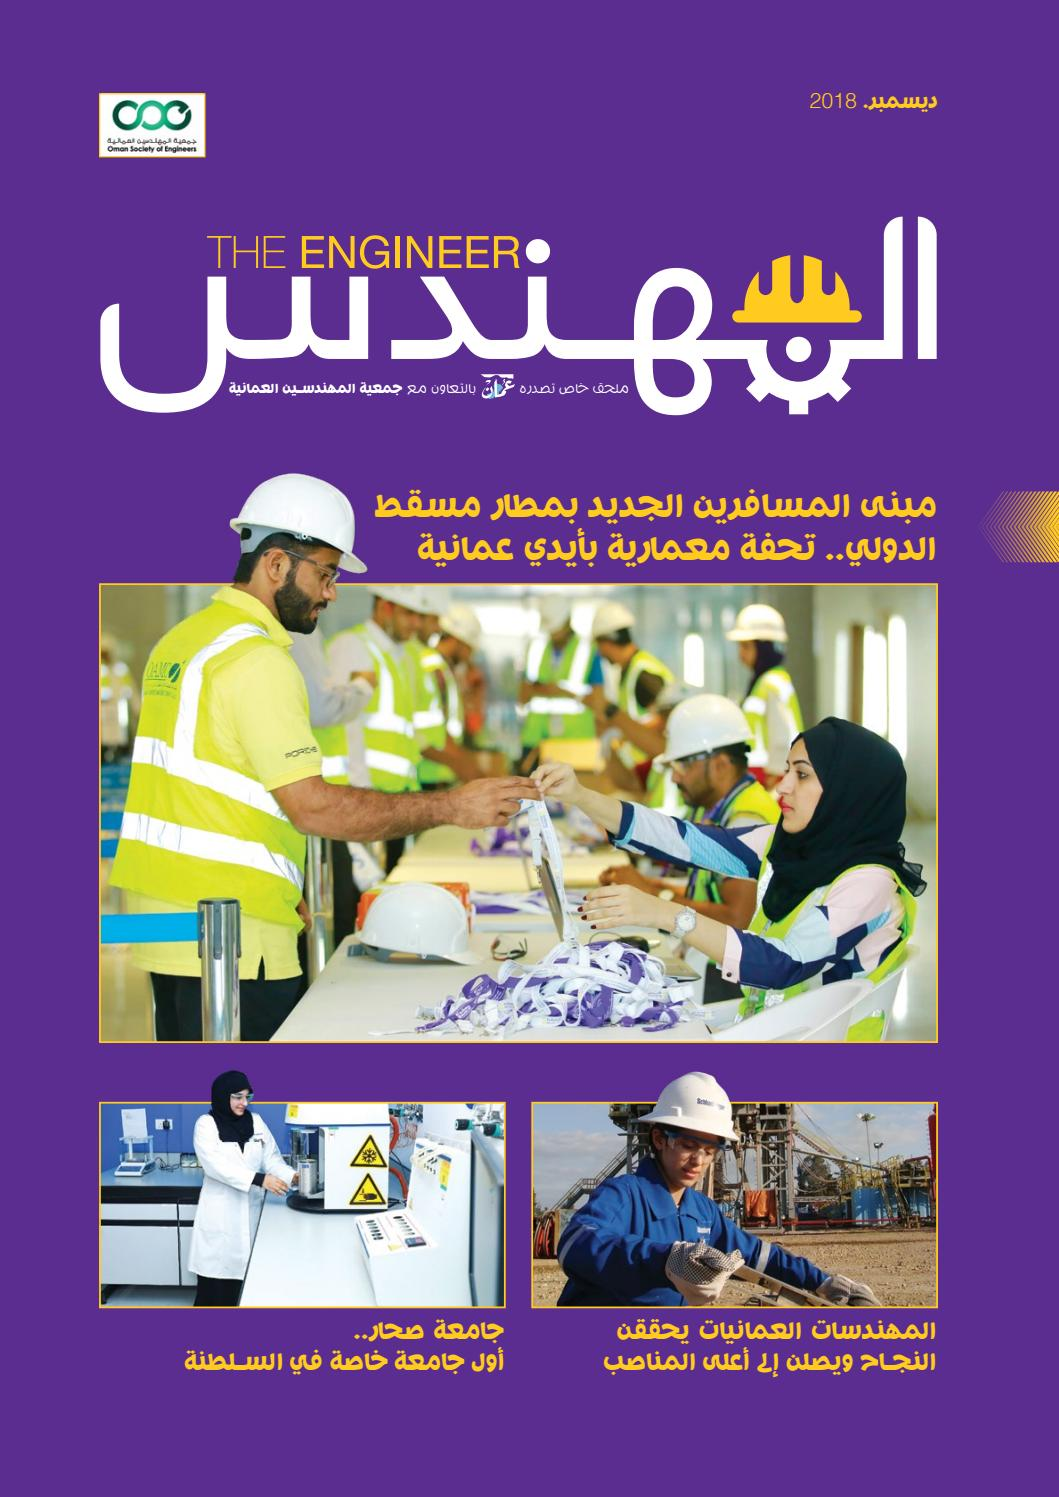 5f8d0247a329f Engineers 4 2018 by Oman Establishment for Press